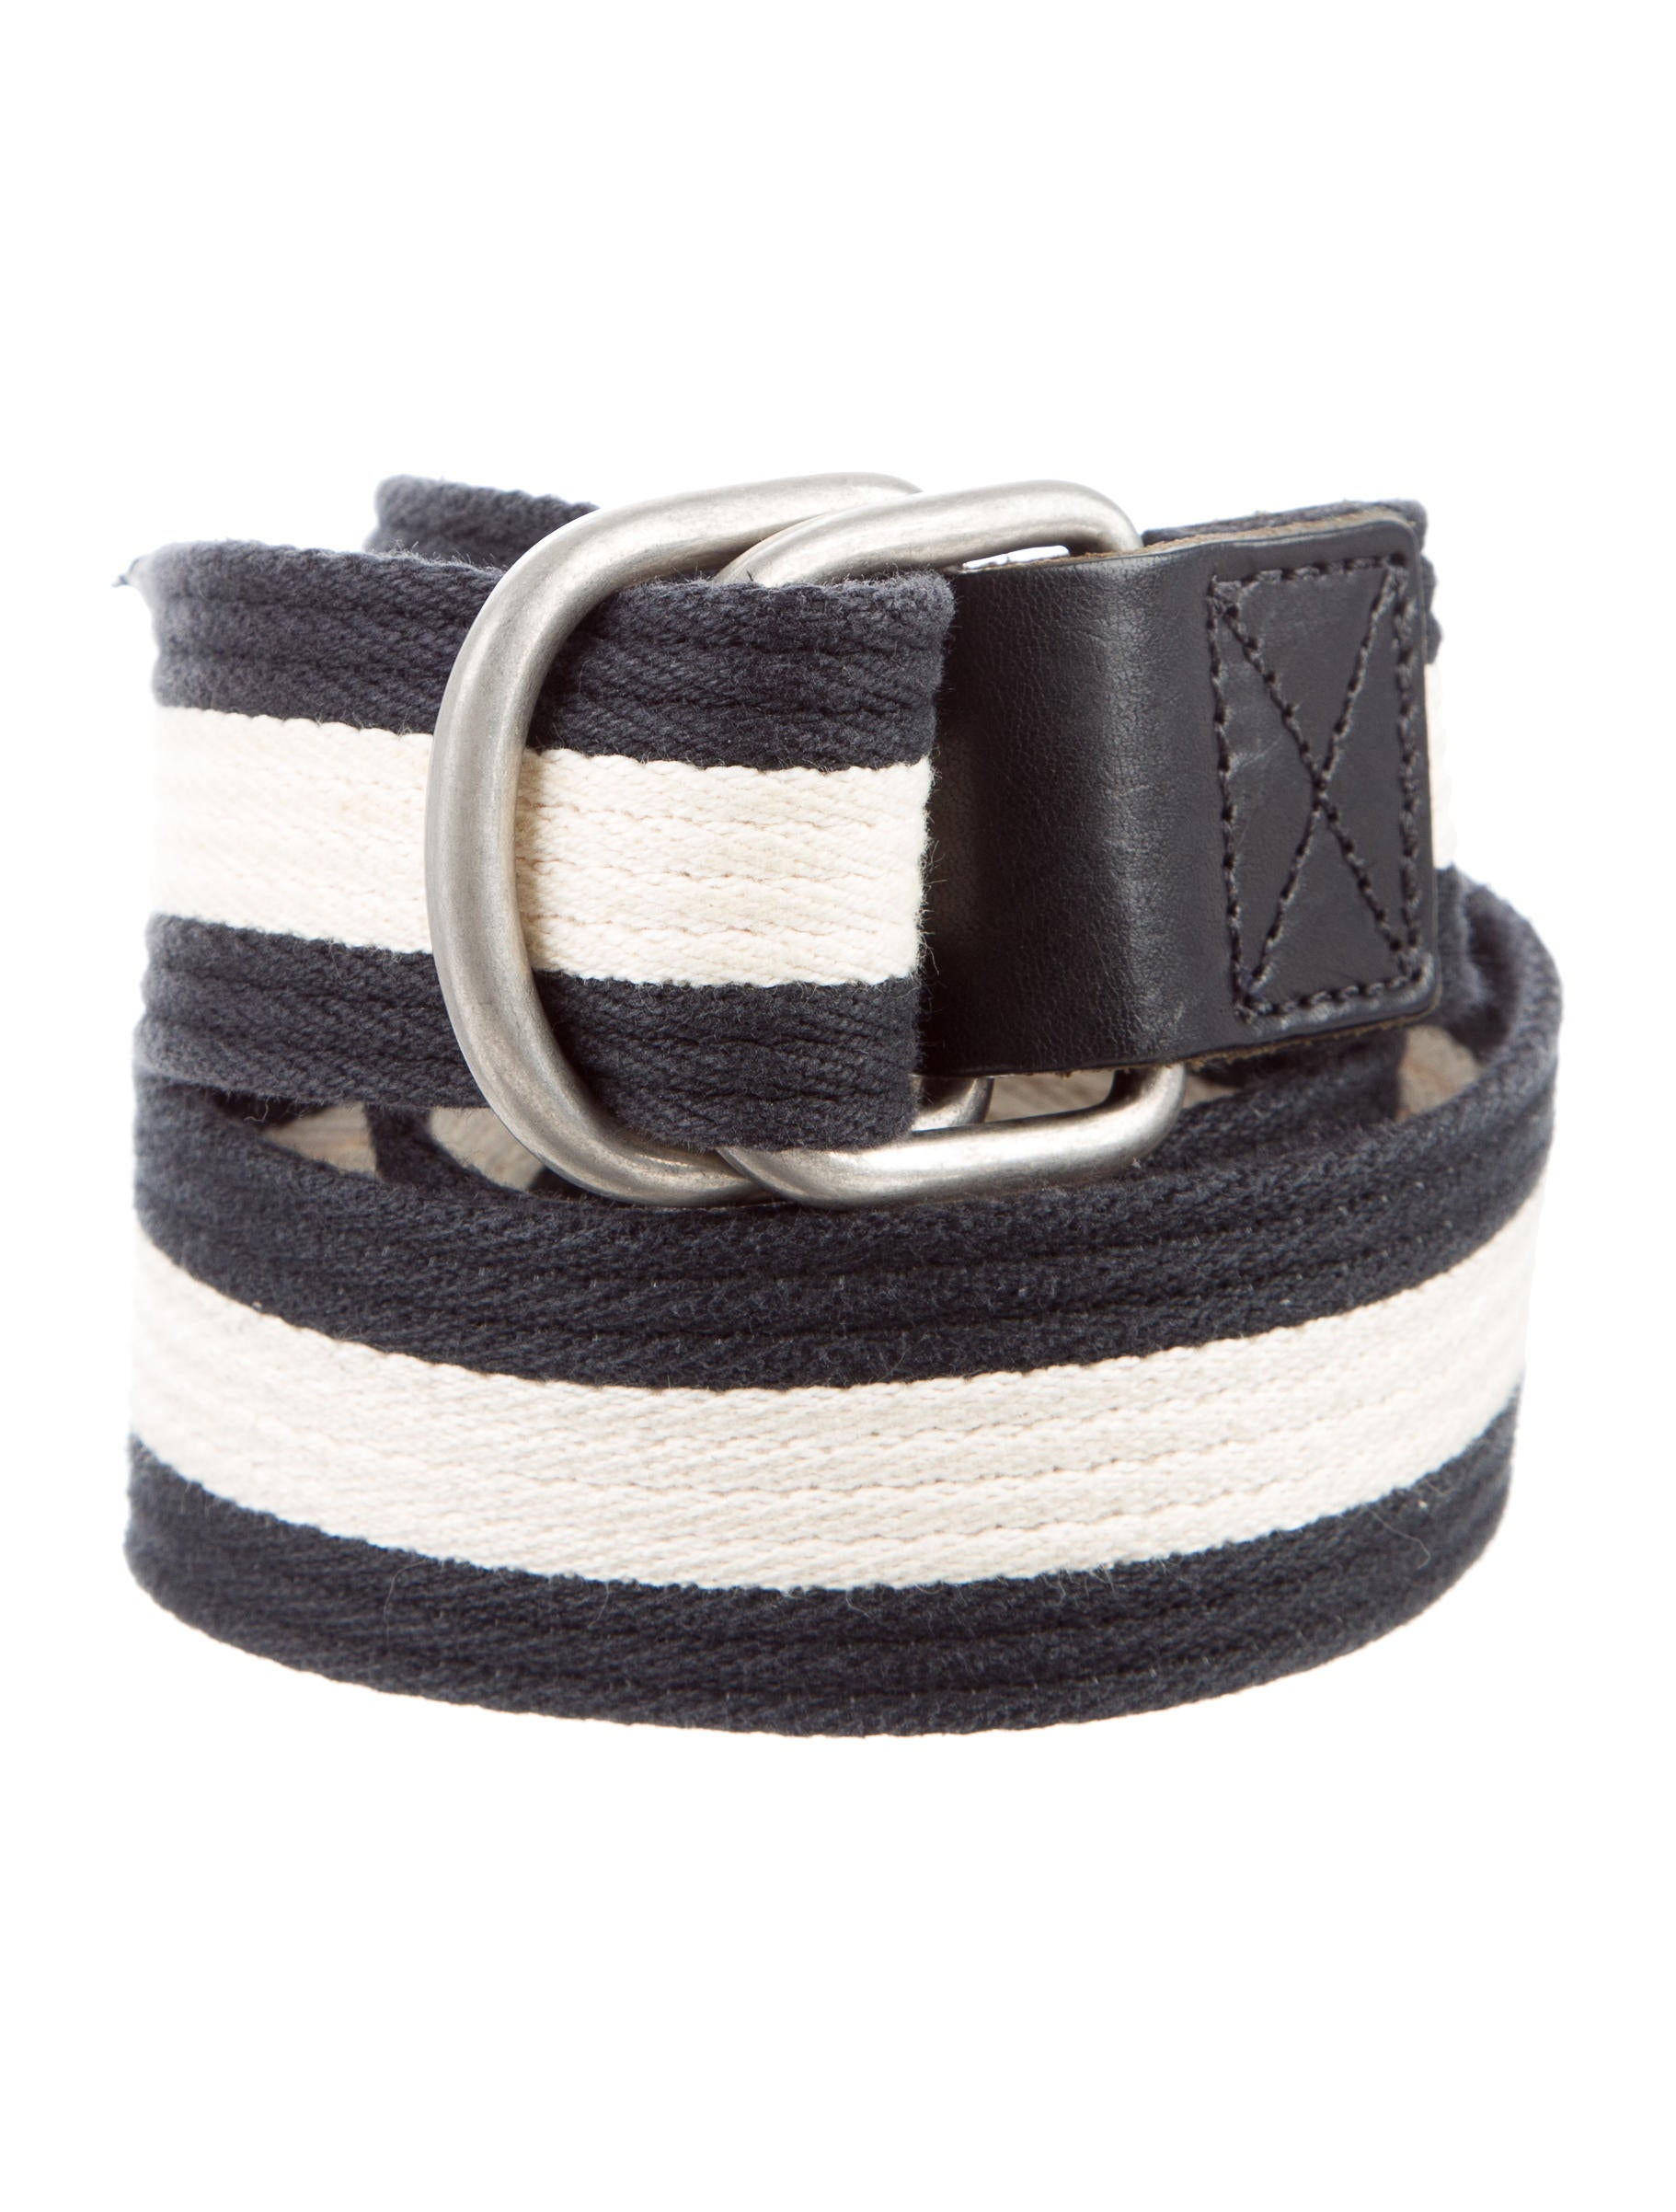 Small Leather Goods - Belts Osklen